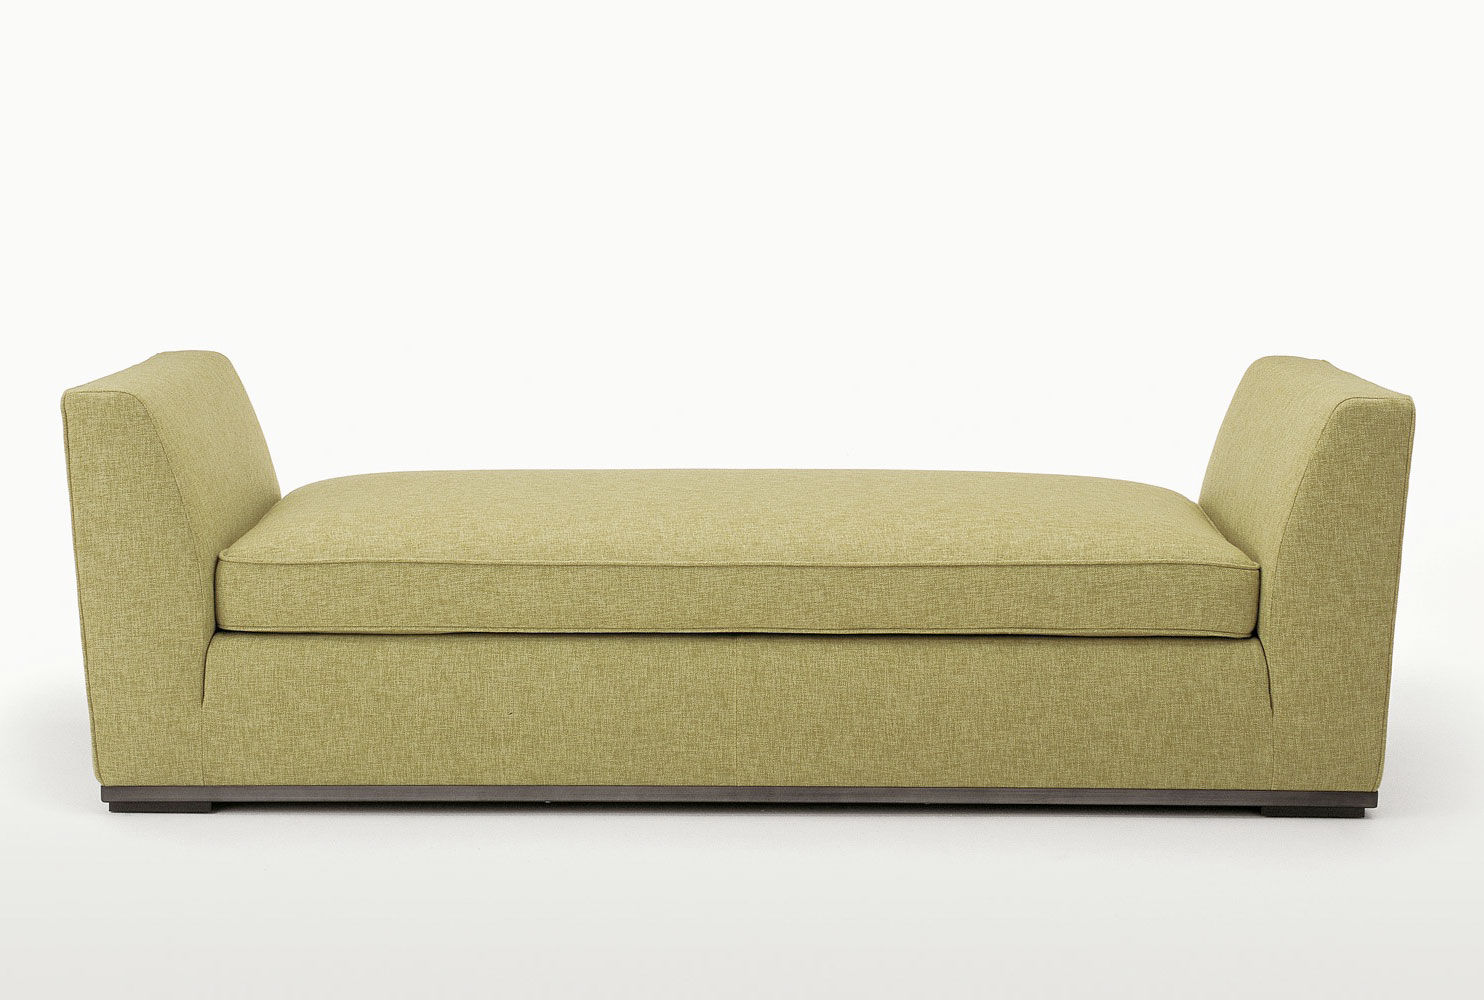 contemporary upholstered bench  fabric  by antonio citterio  - contemporary upholstered bench  fabric  by antonio citterio  beige intervallum